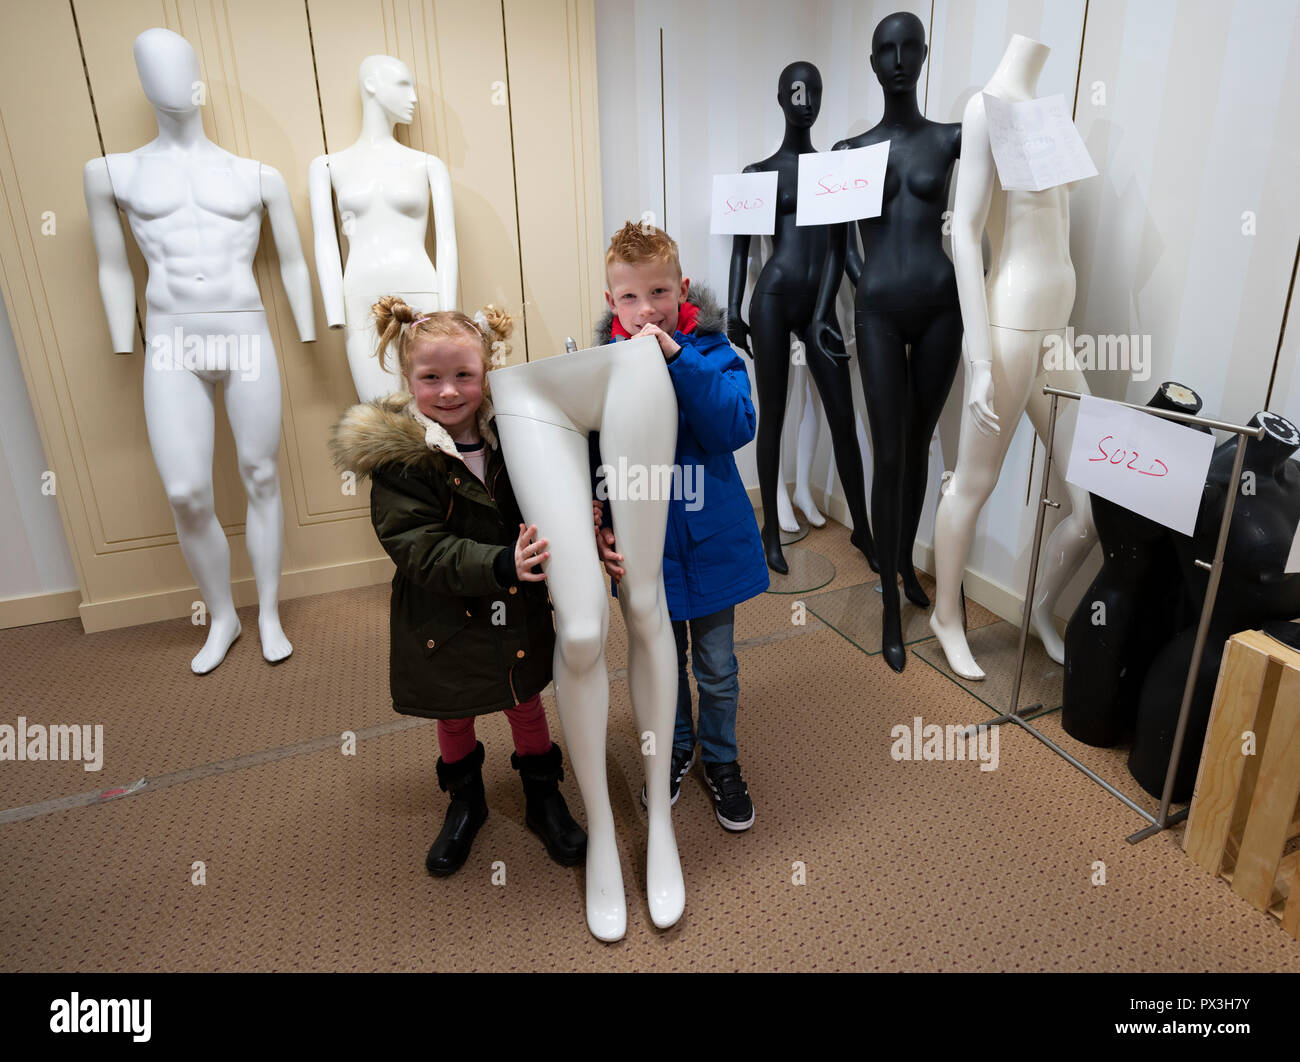 Edinburgh, Scotland, UK. 19 October, 2018. With the imminent closure of iconic Frasers department store on Princes Street in Edinburgh, even the mannequins are for sale as the store tries to make as much money as possible before the doors close for good. Everything in the store is offered at 50% off prices. Credit: Iain Masterton/Alamy Live News - Stock Image